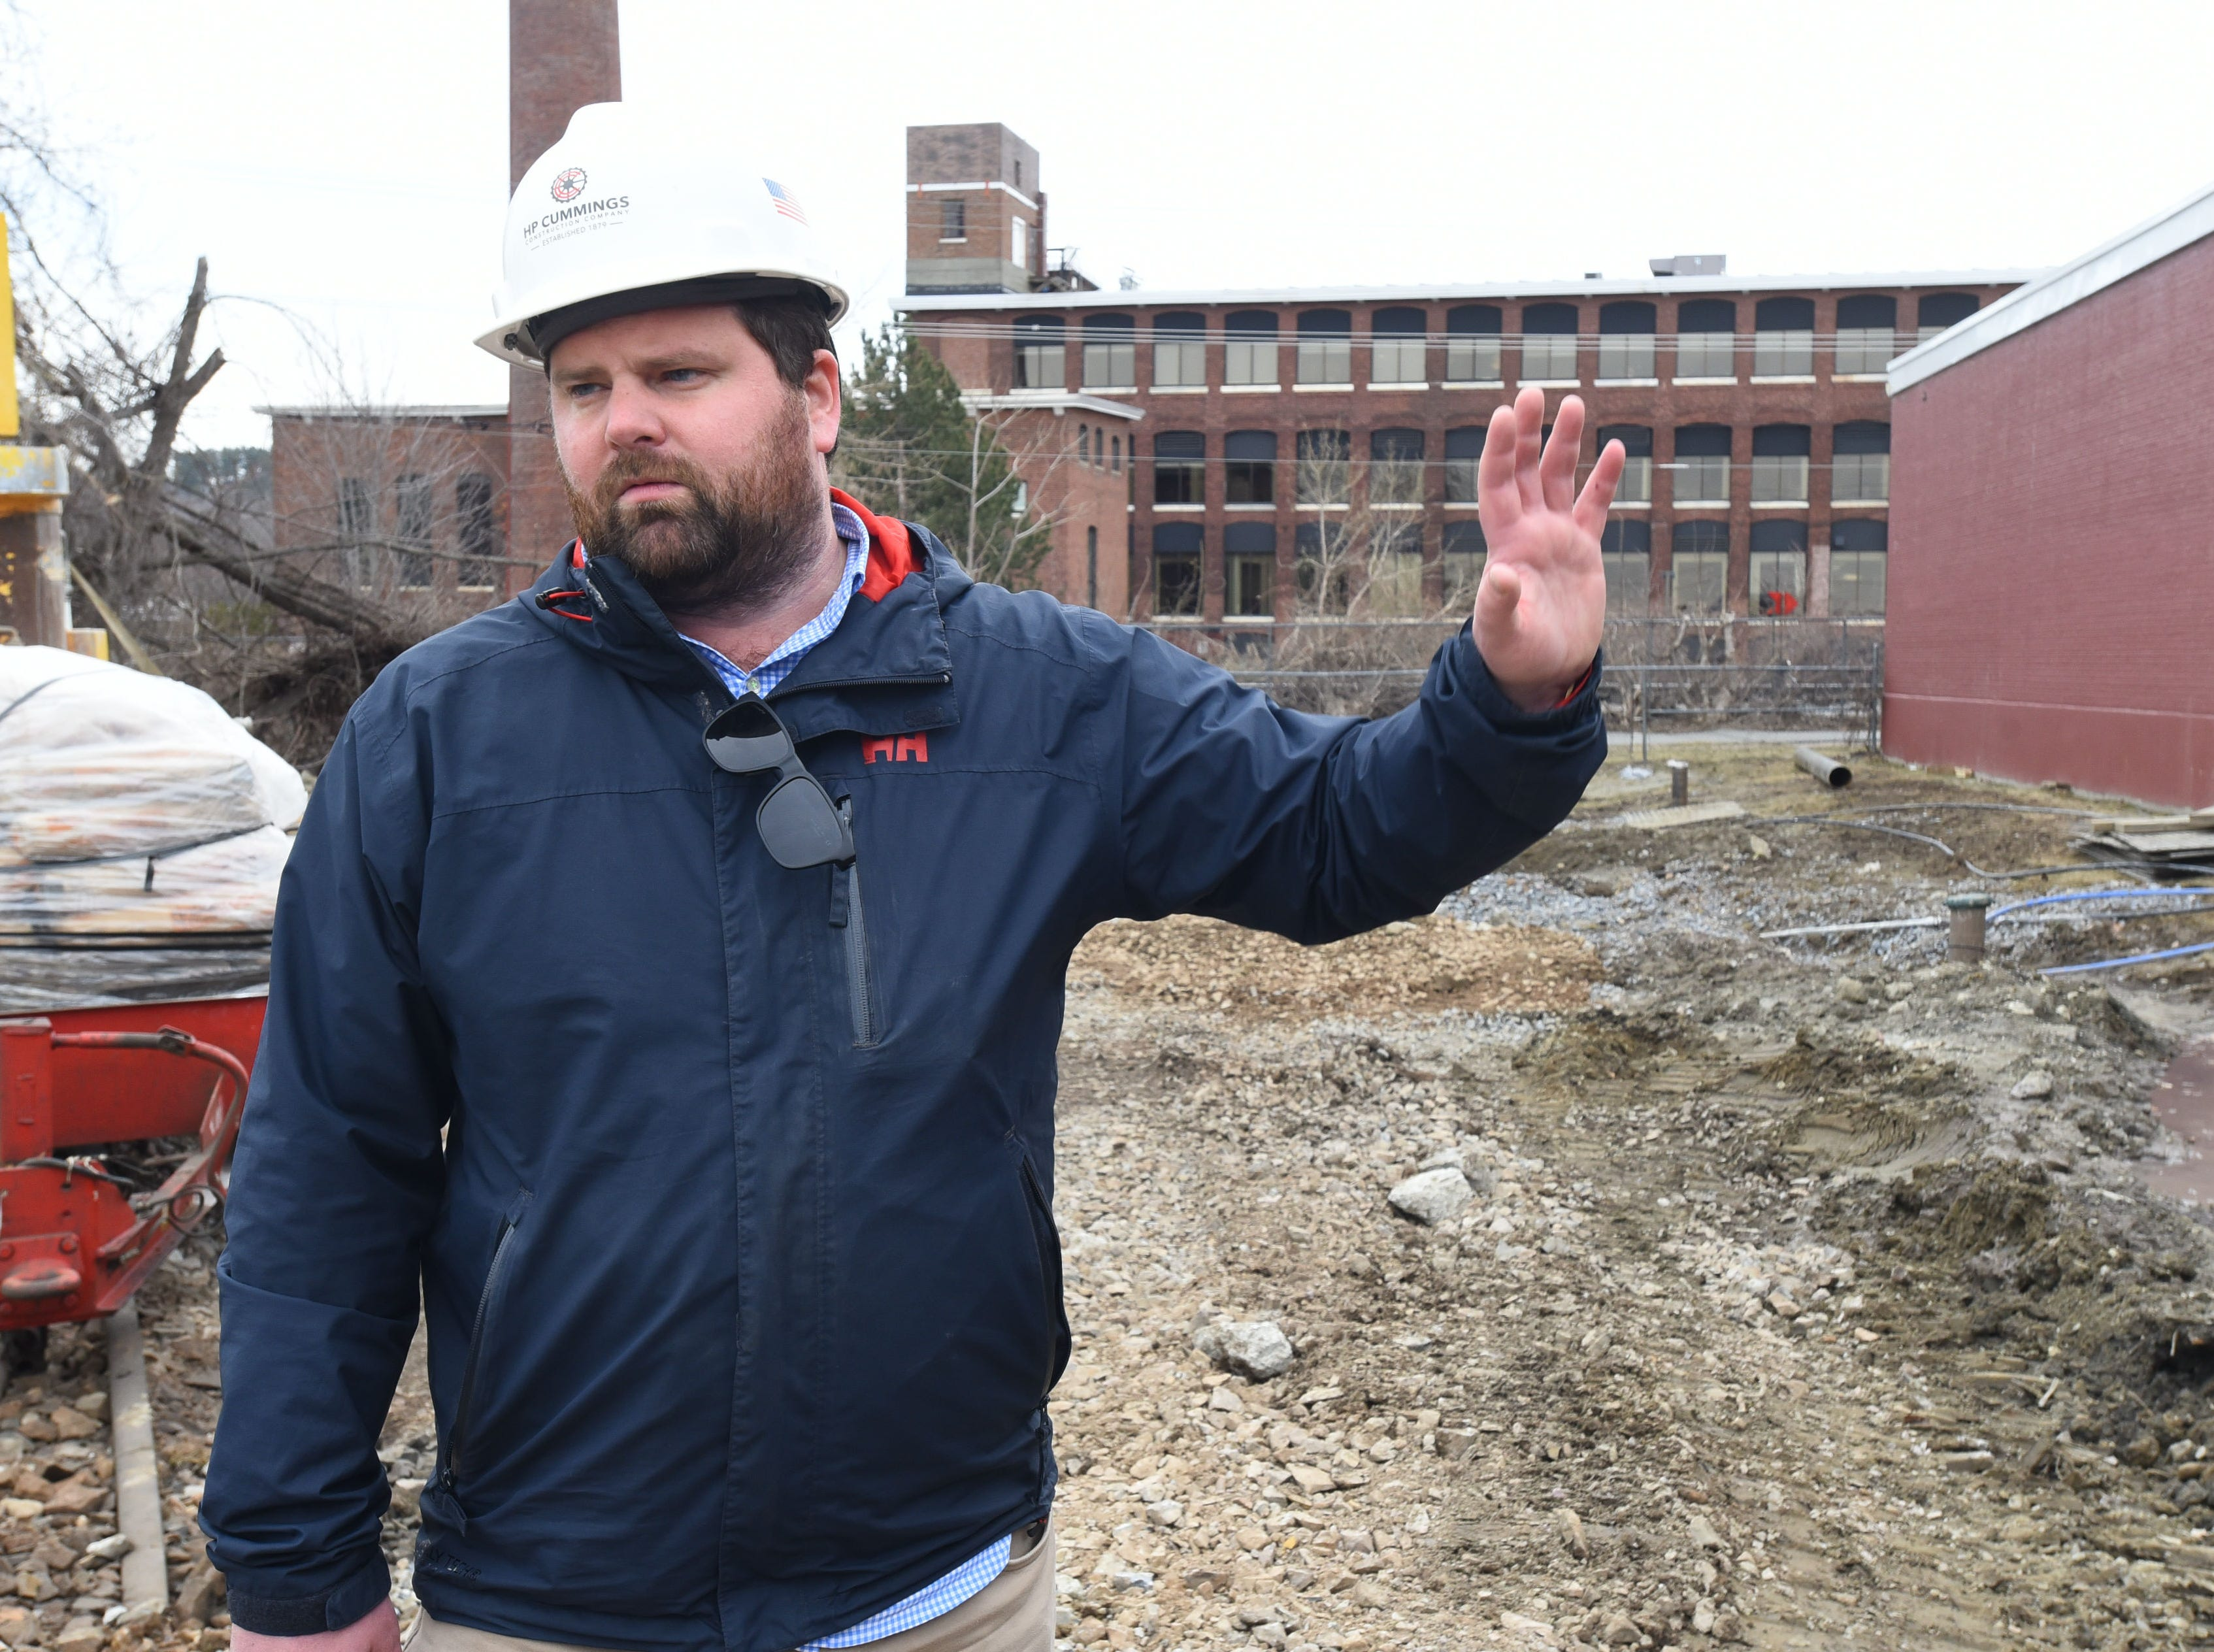 ... Friday, April 12, 2019, at the former Blodgett Oven plant on Lakeside Avenue in Burlington. The 14 acre site is being redeveloped into an energy efficient campus for companies.